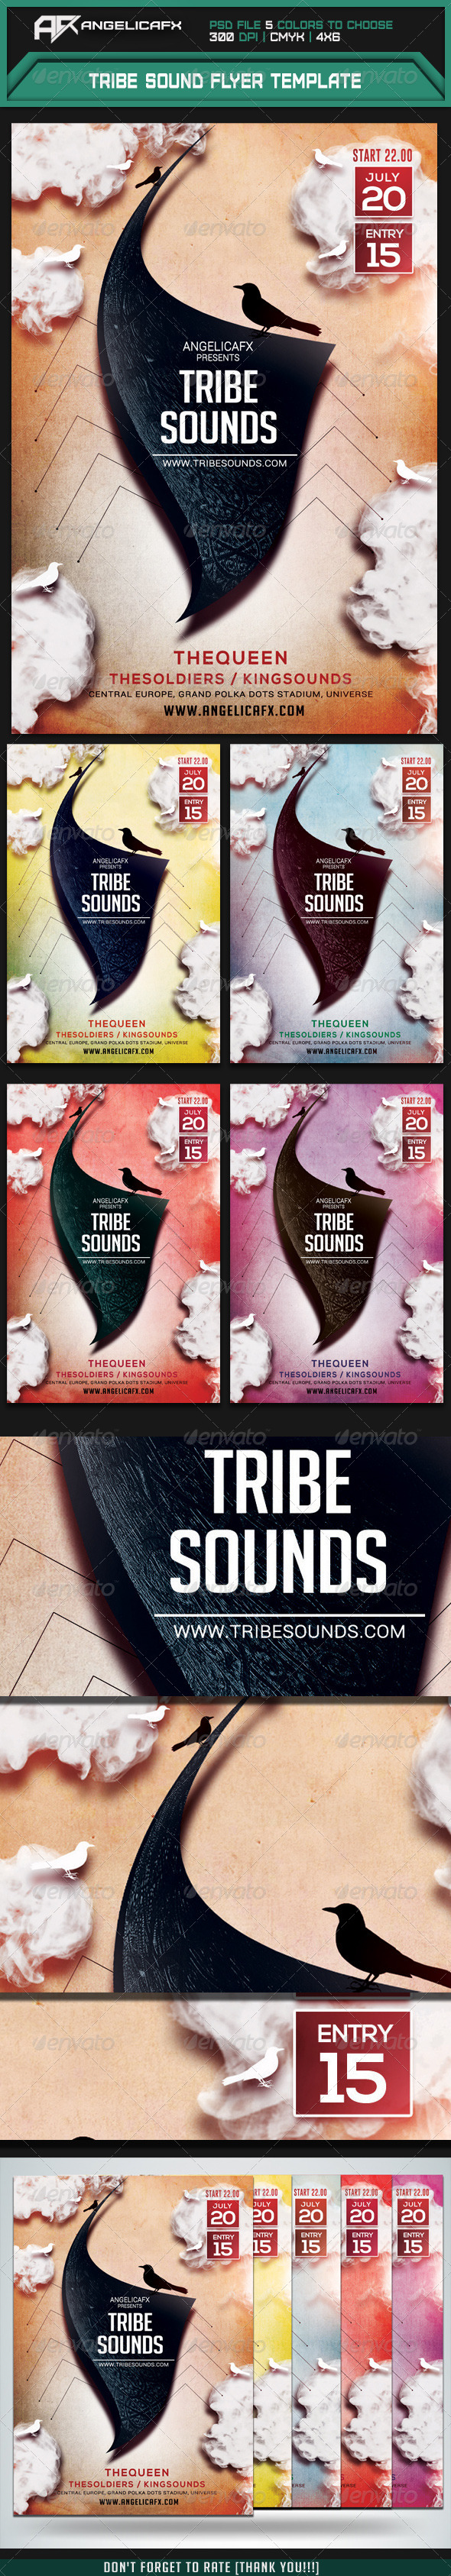 GraphicRiver Tribe Sounds Flyer Template 7550964